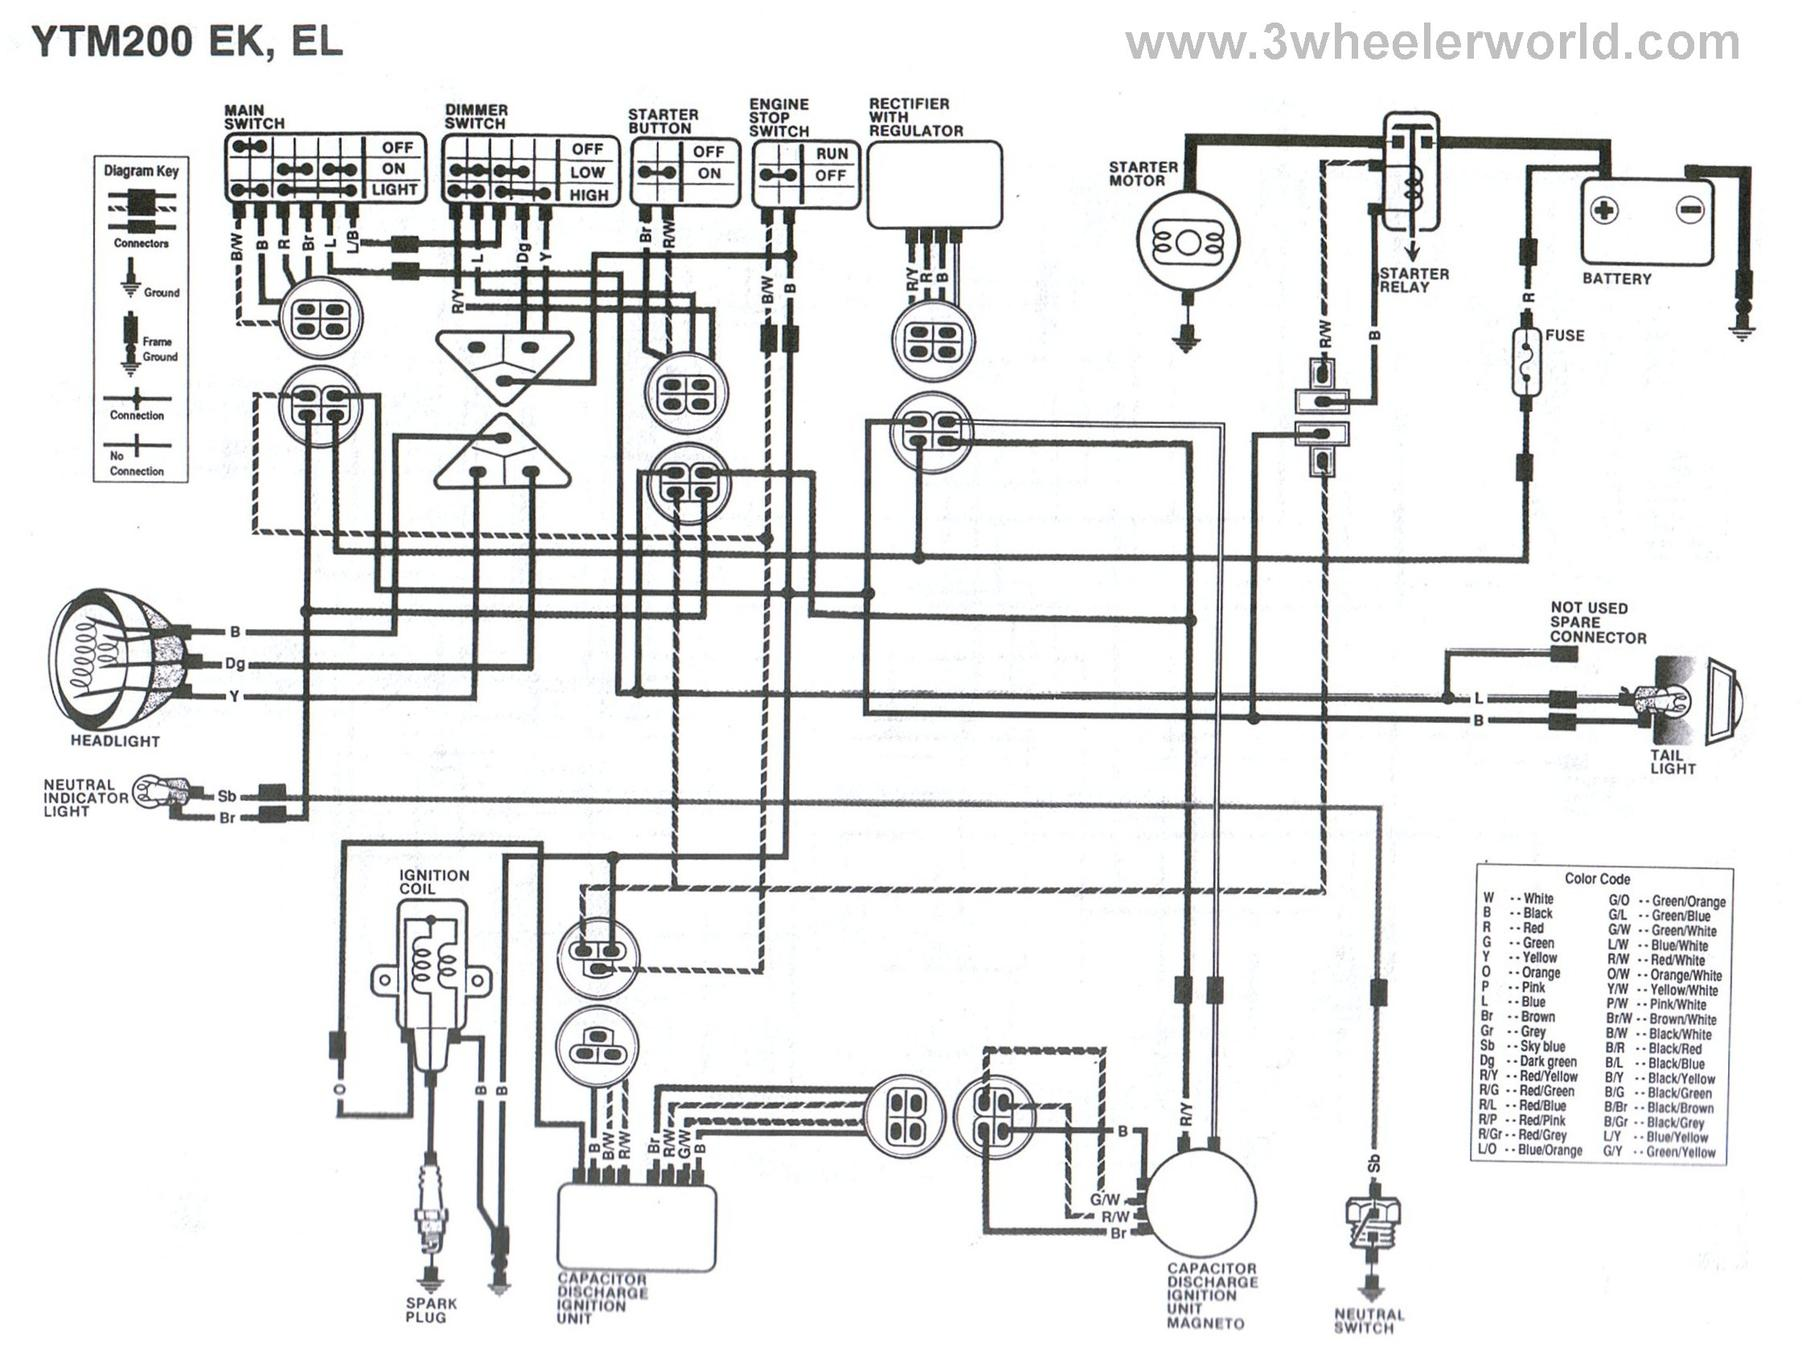 WRG-1178] Wiring Schematic For A 1997 Ymf Yamaha 250 Four ... on